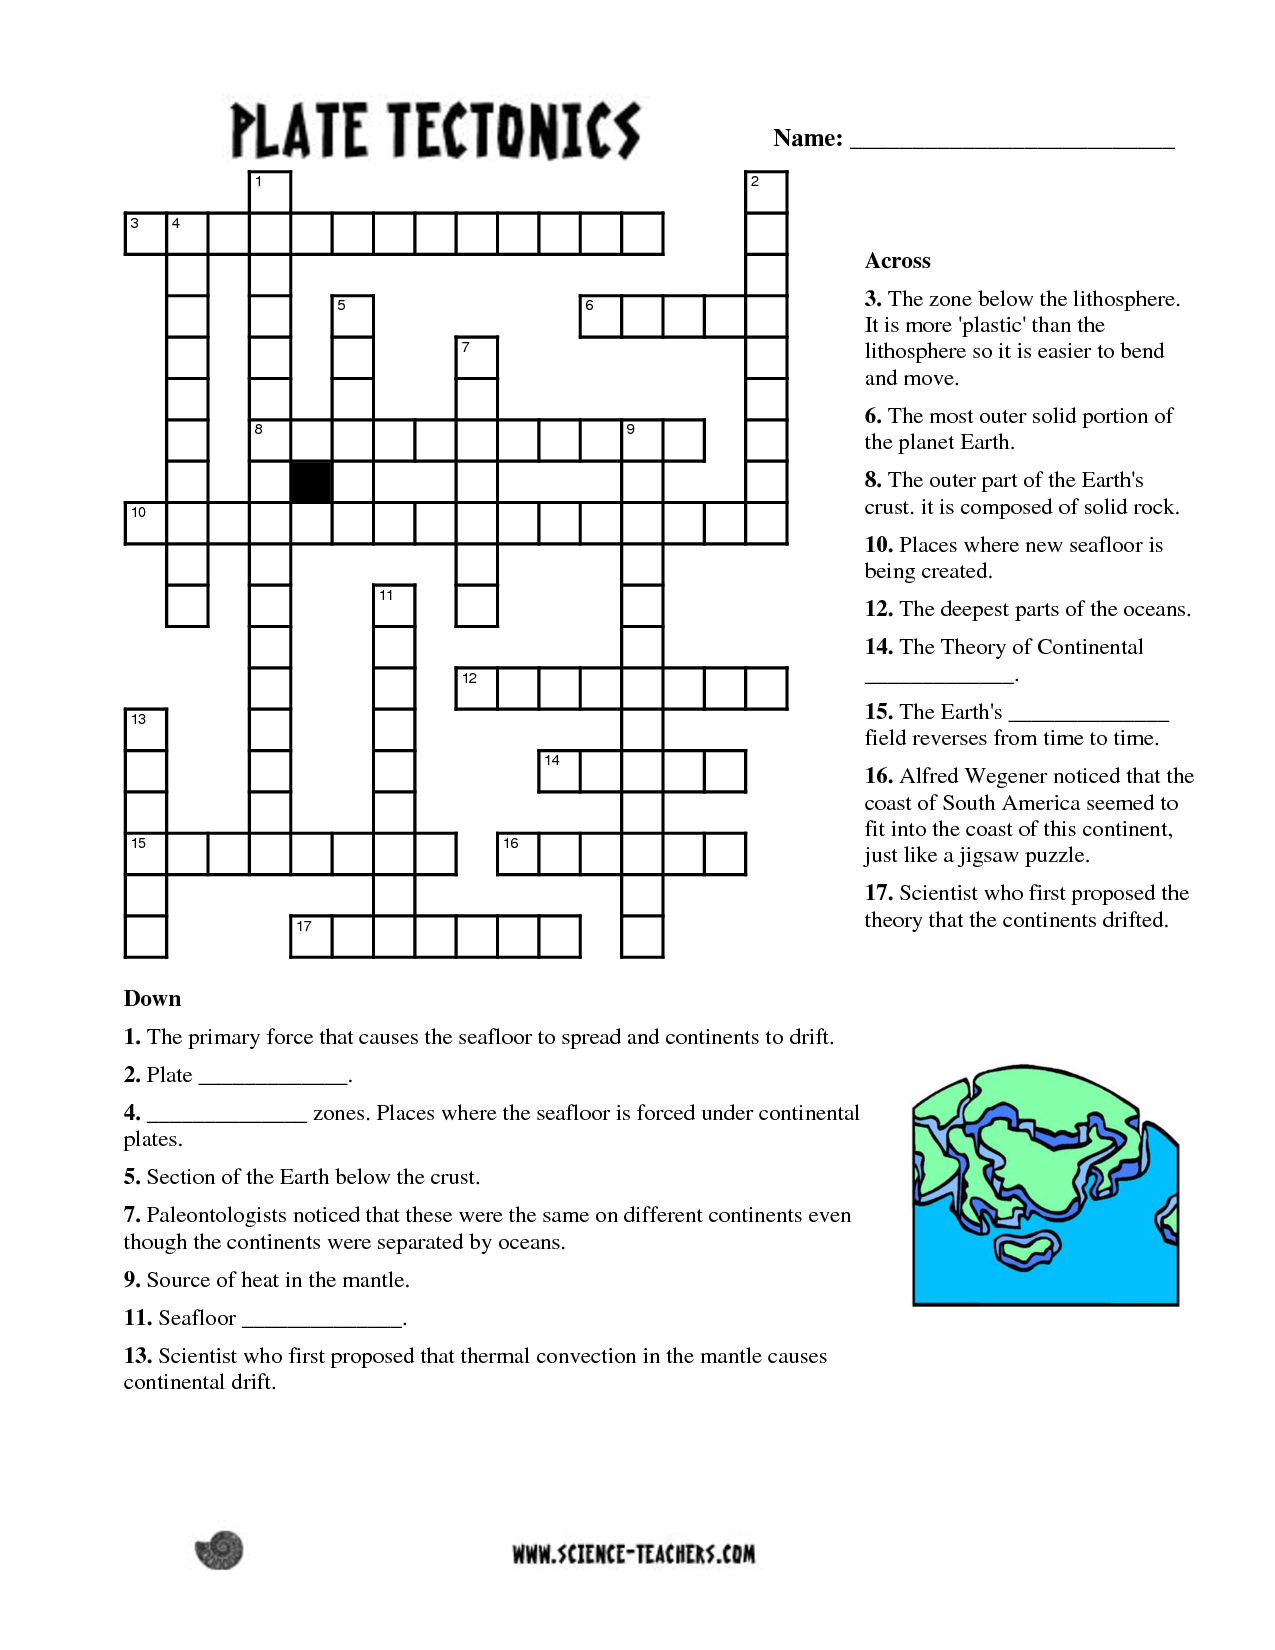 Printable English Crossword Puzzles With Answers